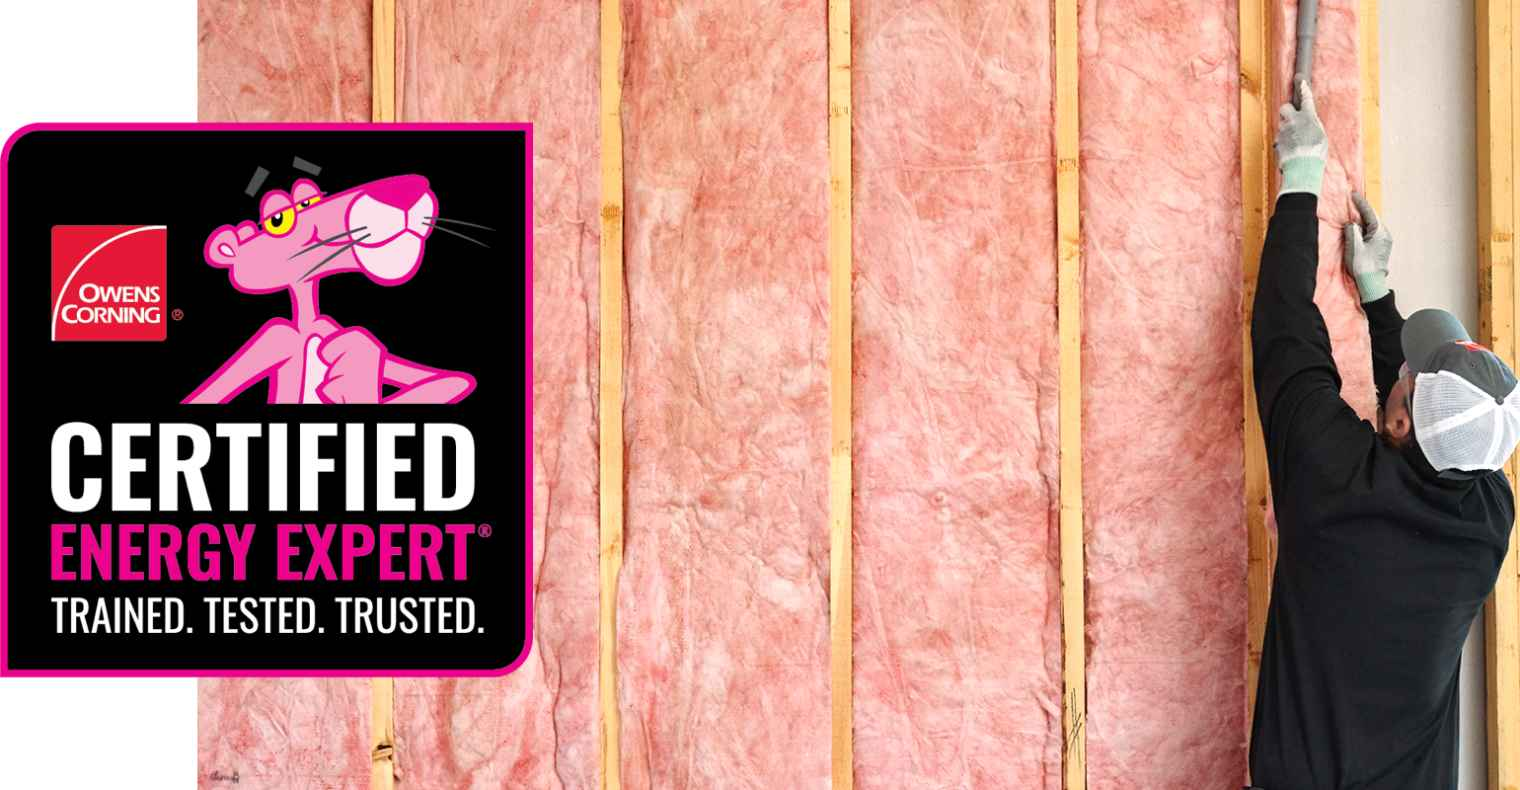 cee-trained-tested-trusted wall insulation